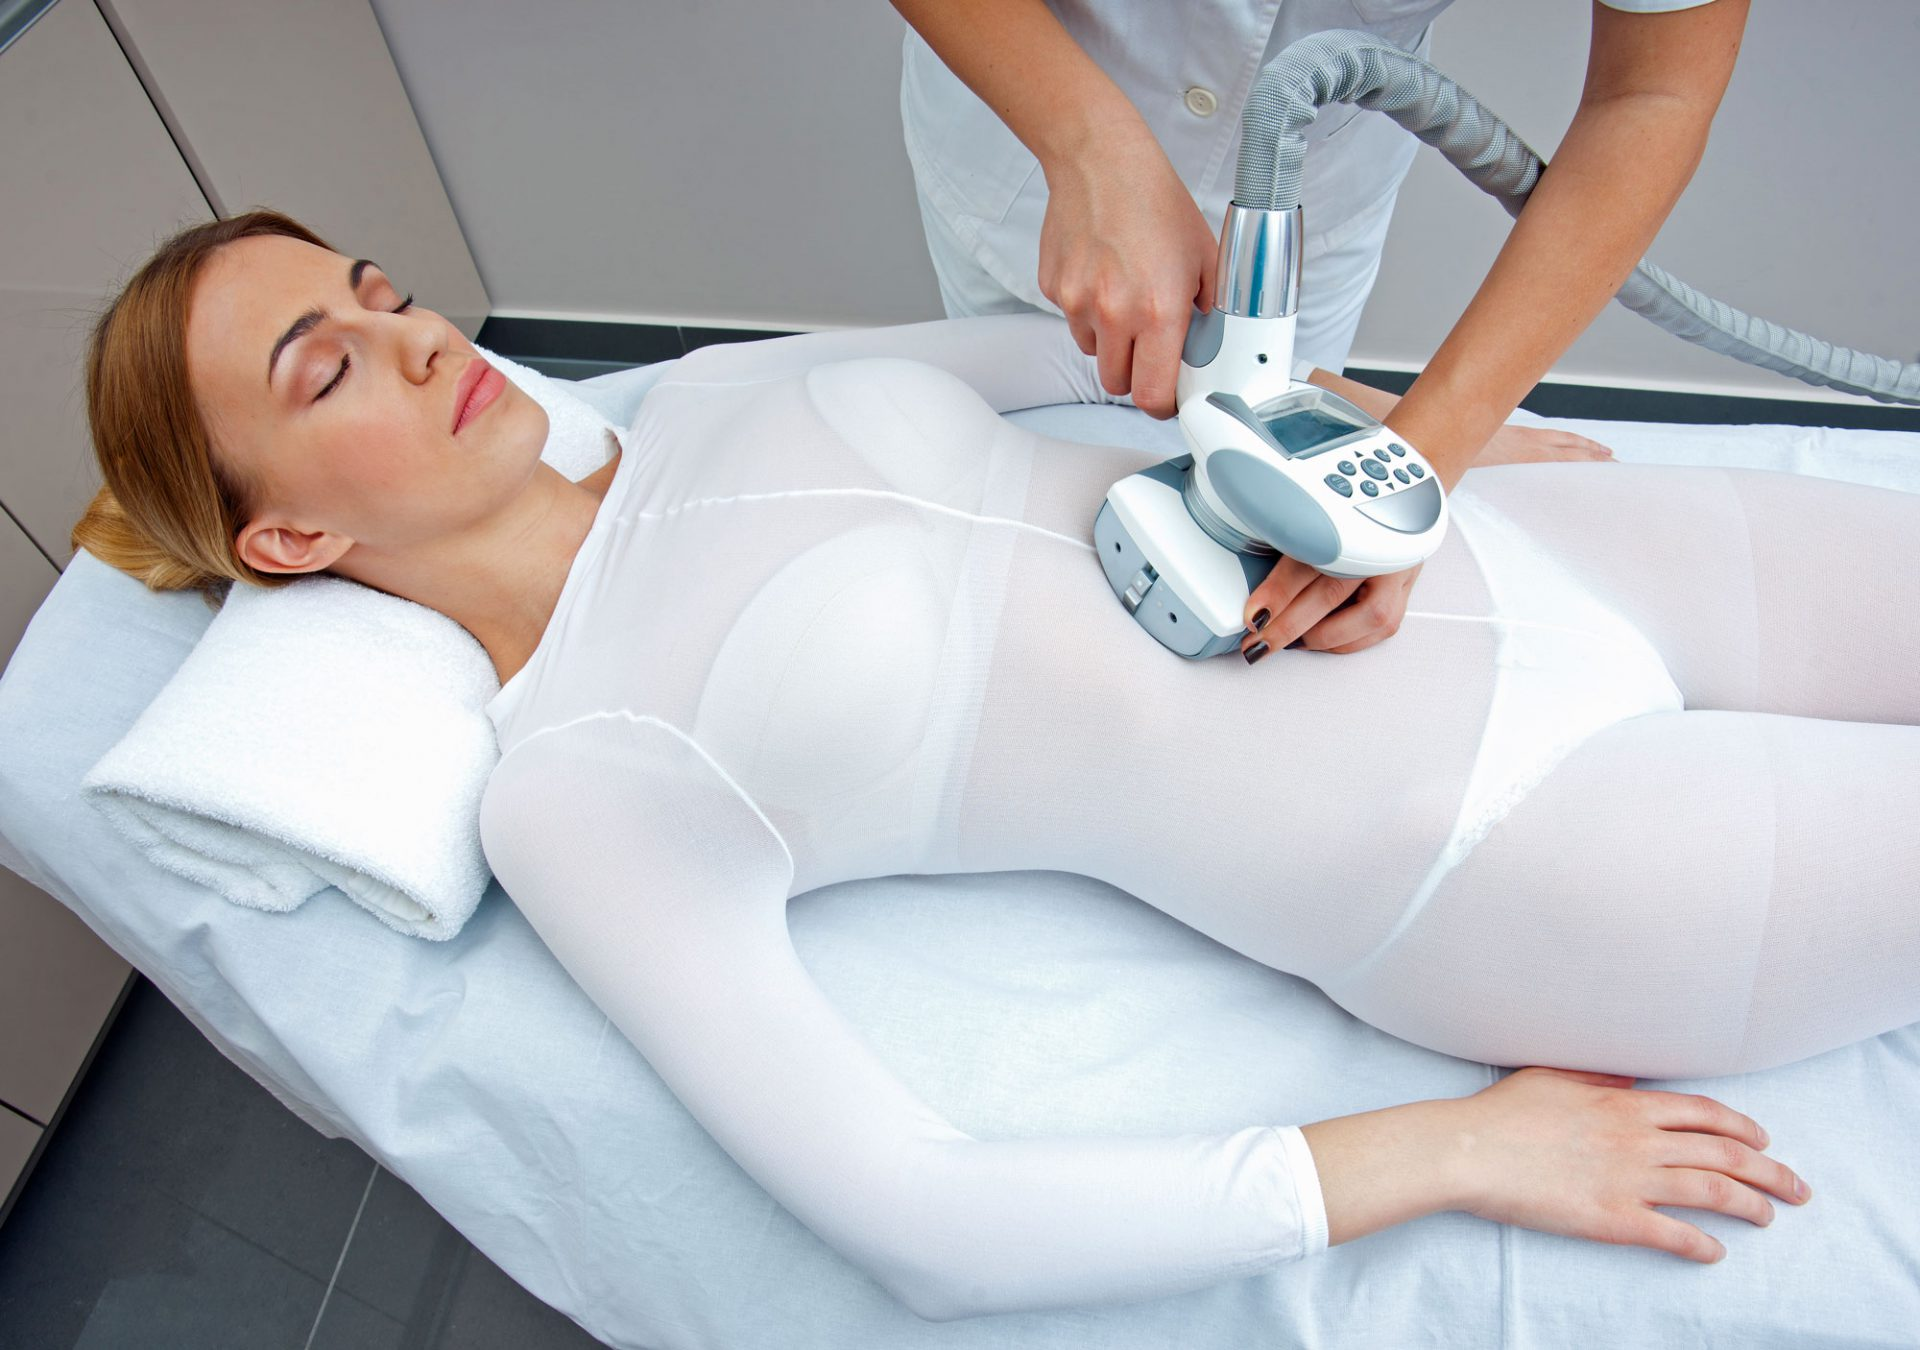 What is Endermologie?